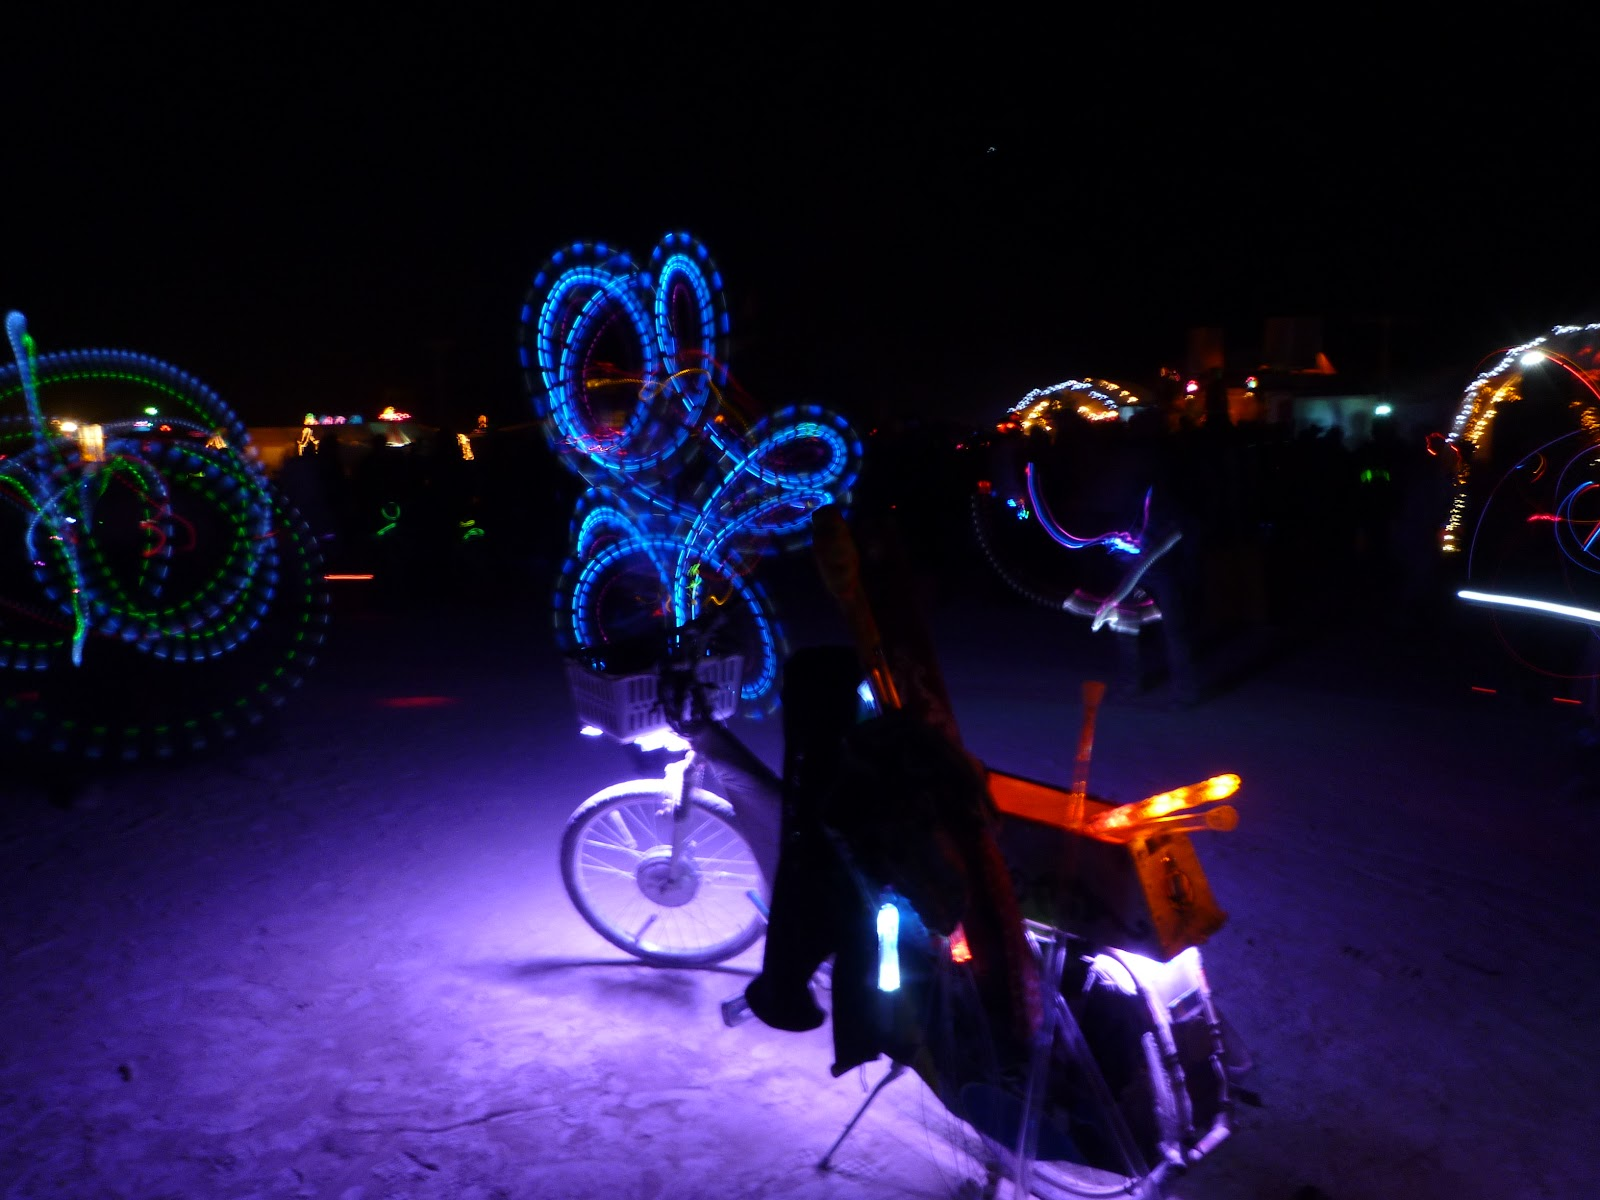 battery-powered bike lighting